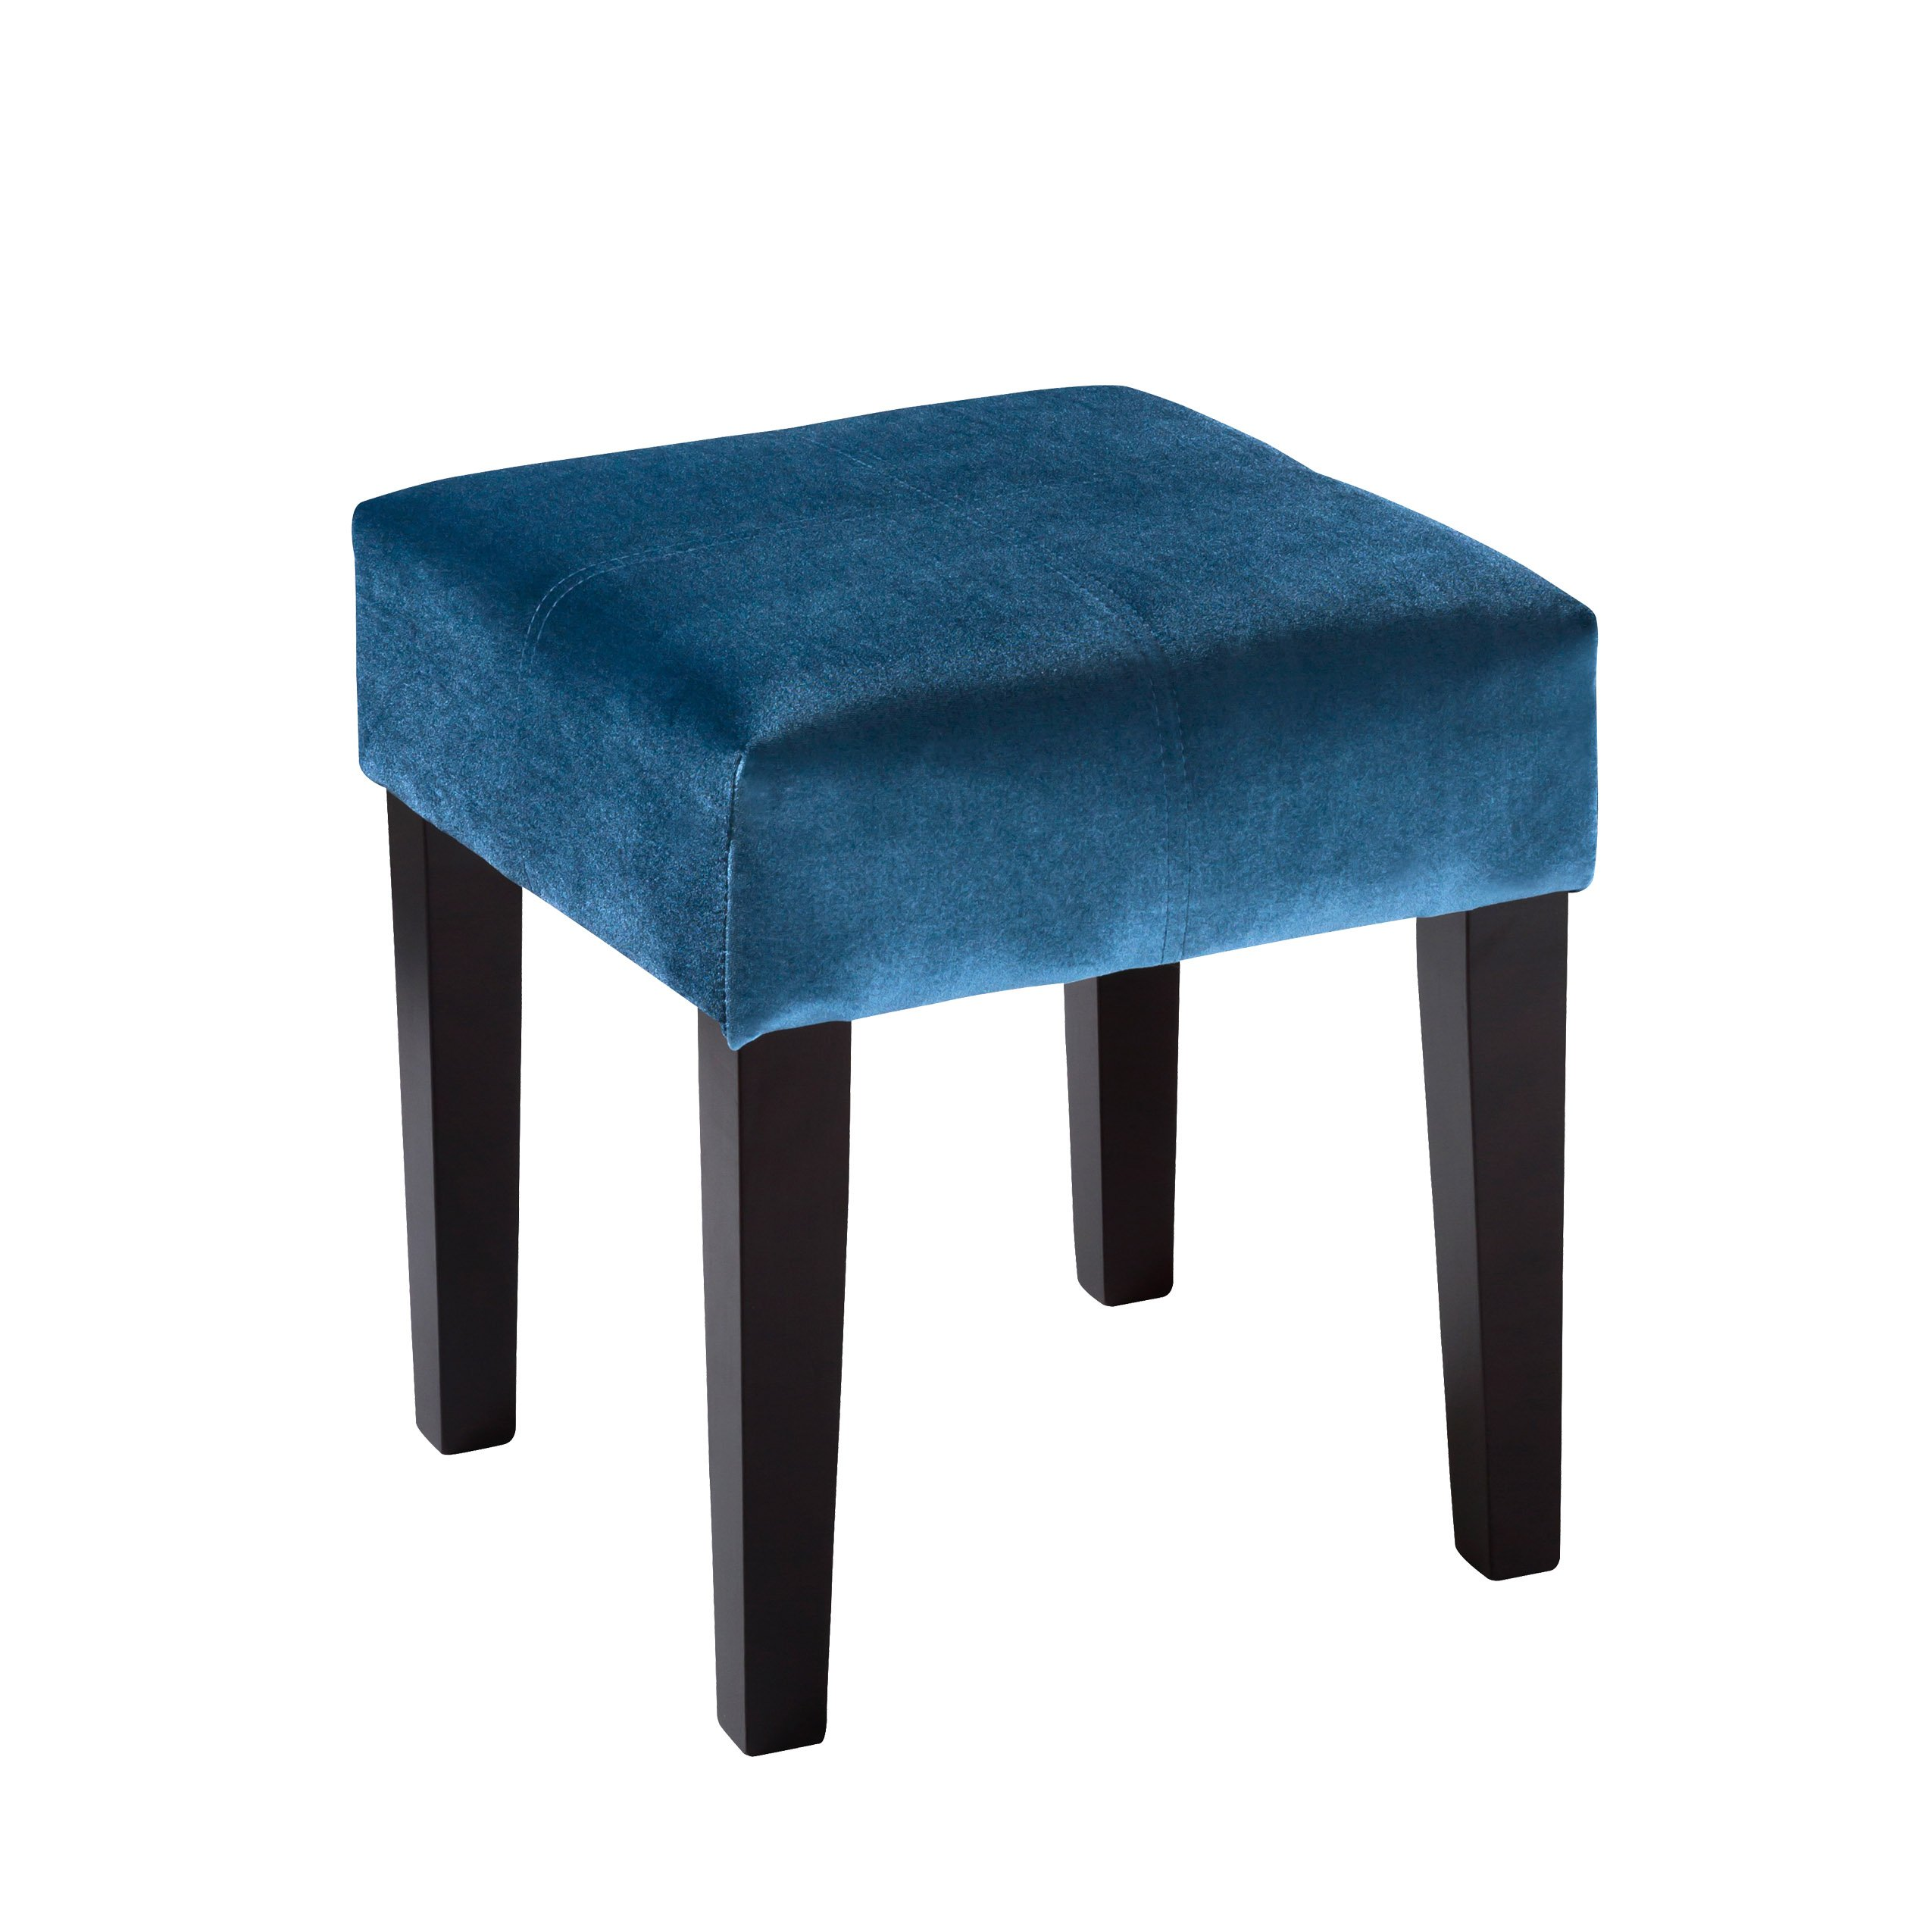 CorLiving Antonio Lad-228-O 16'' Square Ottoman Bench Footrest Velvet with Solid Wood Legs, Blue